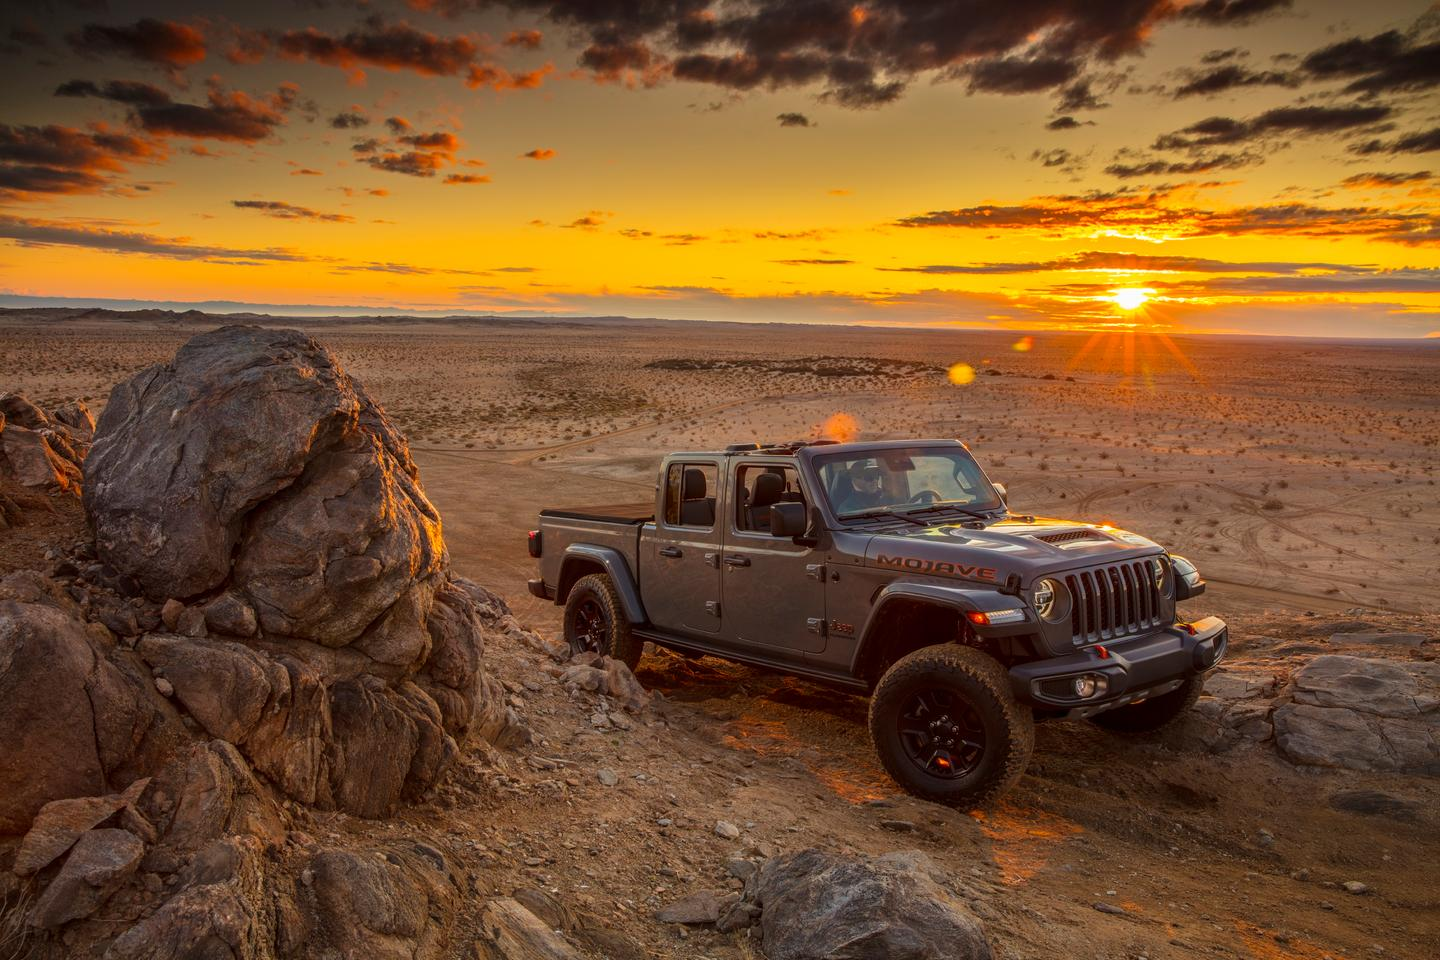 Made for high-speed desert running in both hardpack and sand, the new Jeep Gladiator Mojave gets a new Jeep rating for its capability